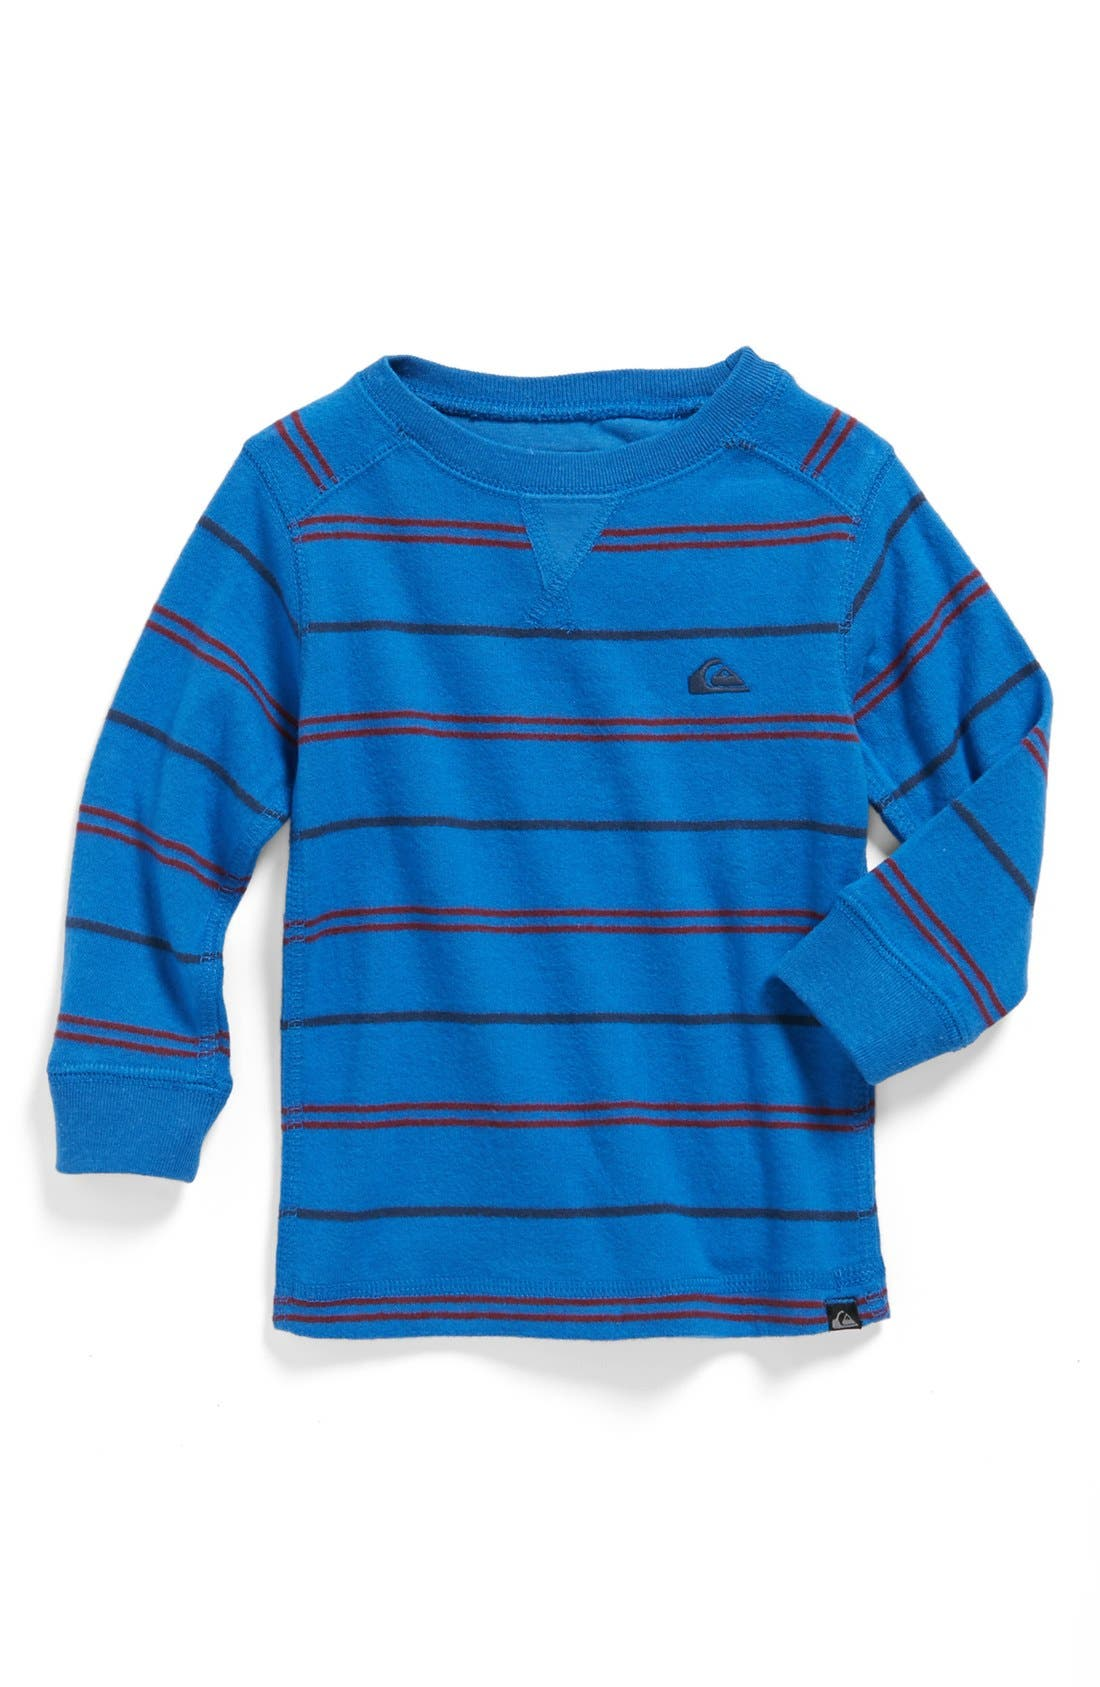 Alternate Image 1 Selected - Quiksilver 'Snit' Stripe Sweater (Baby Boys)